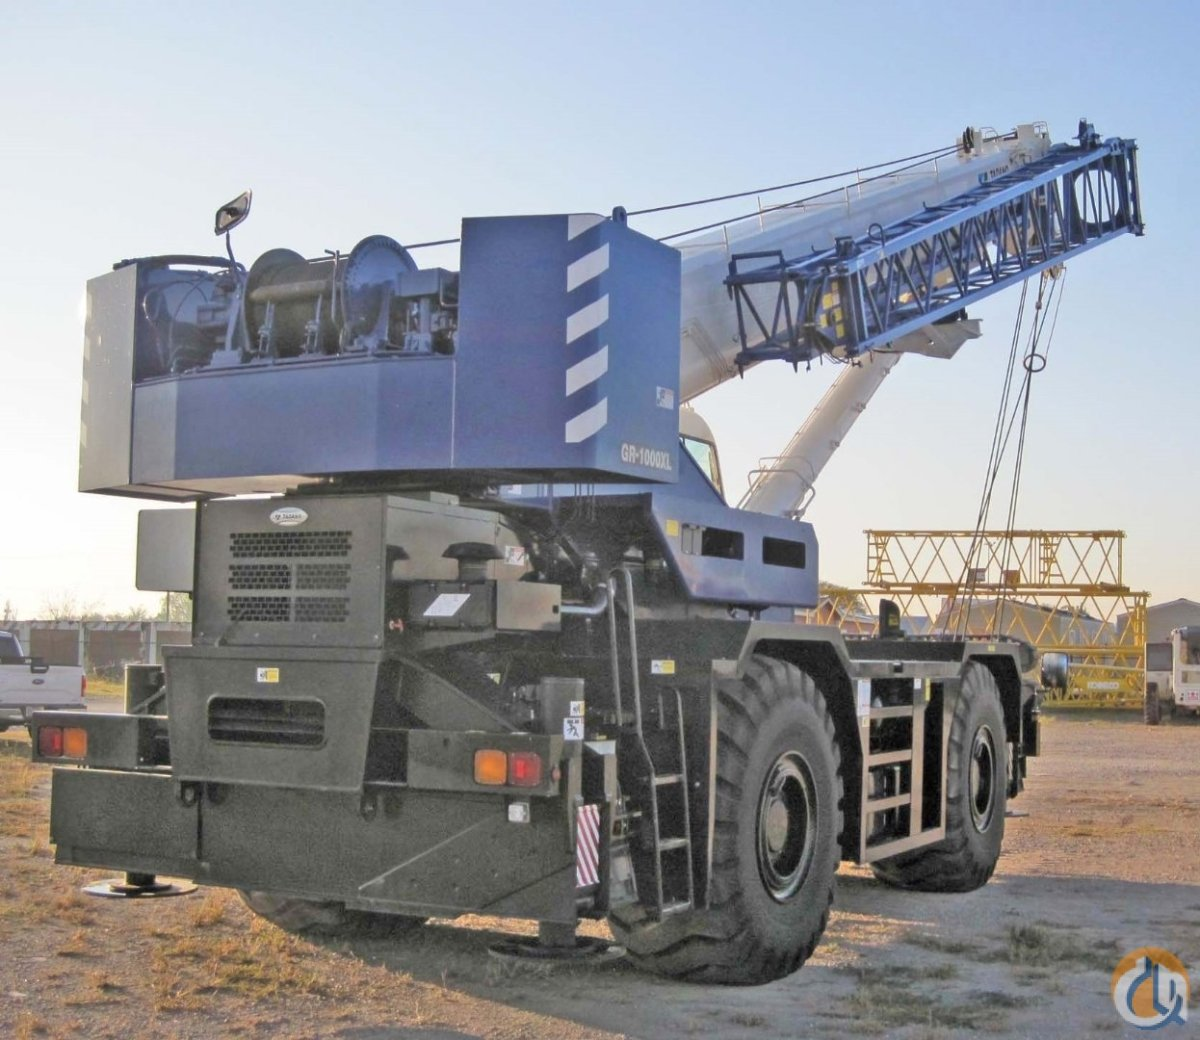 2 2013 TADANO GR1000XL 100 Ton Crane for Sale or Rent in Houston Texas on CraneNetwork.com